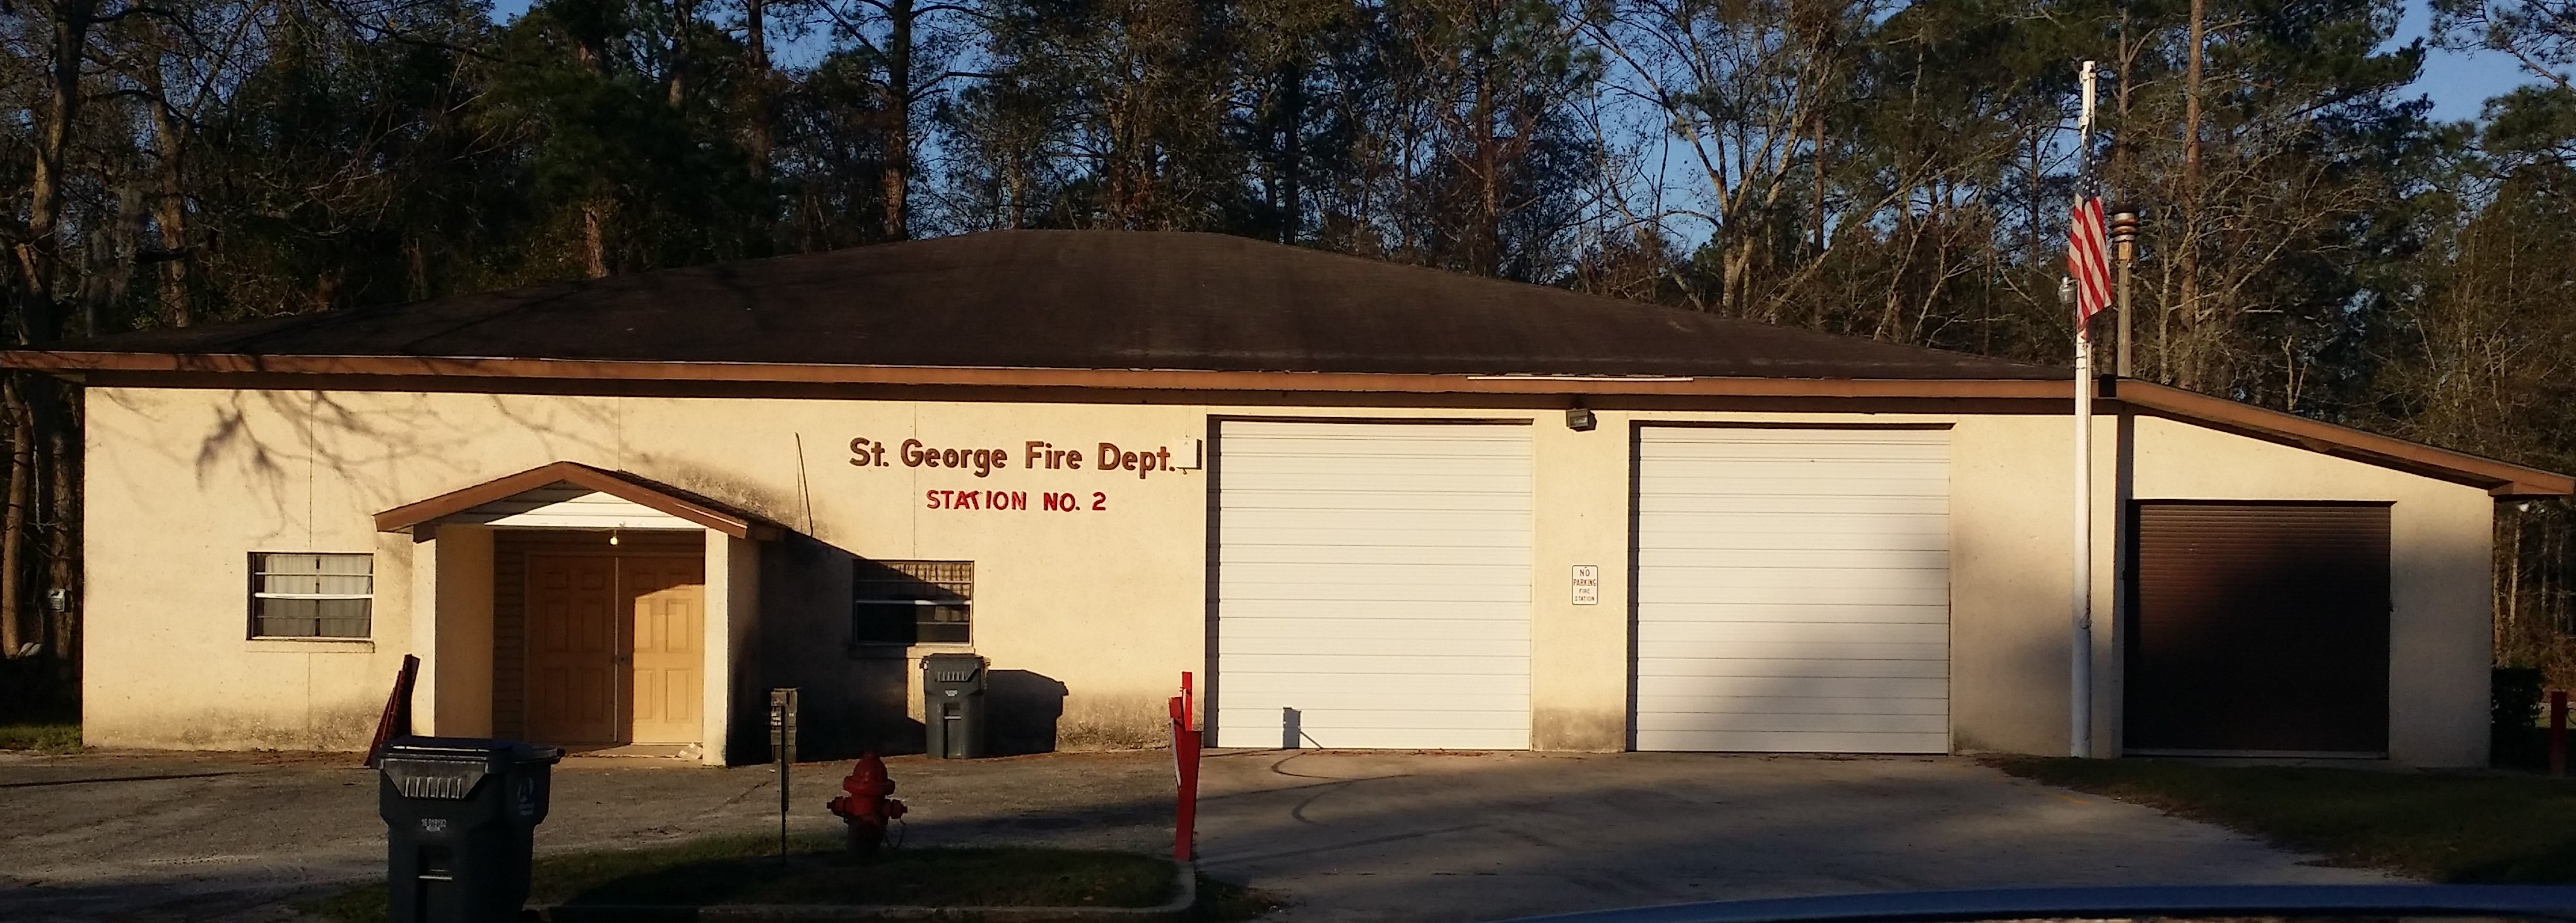 St. George Station 2